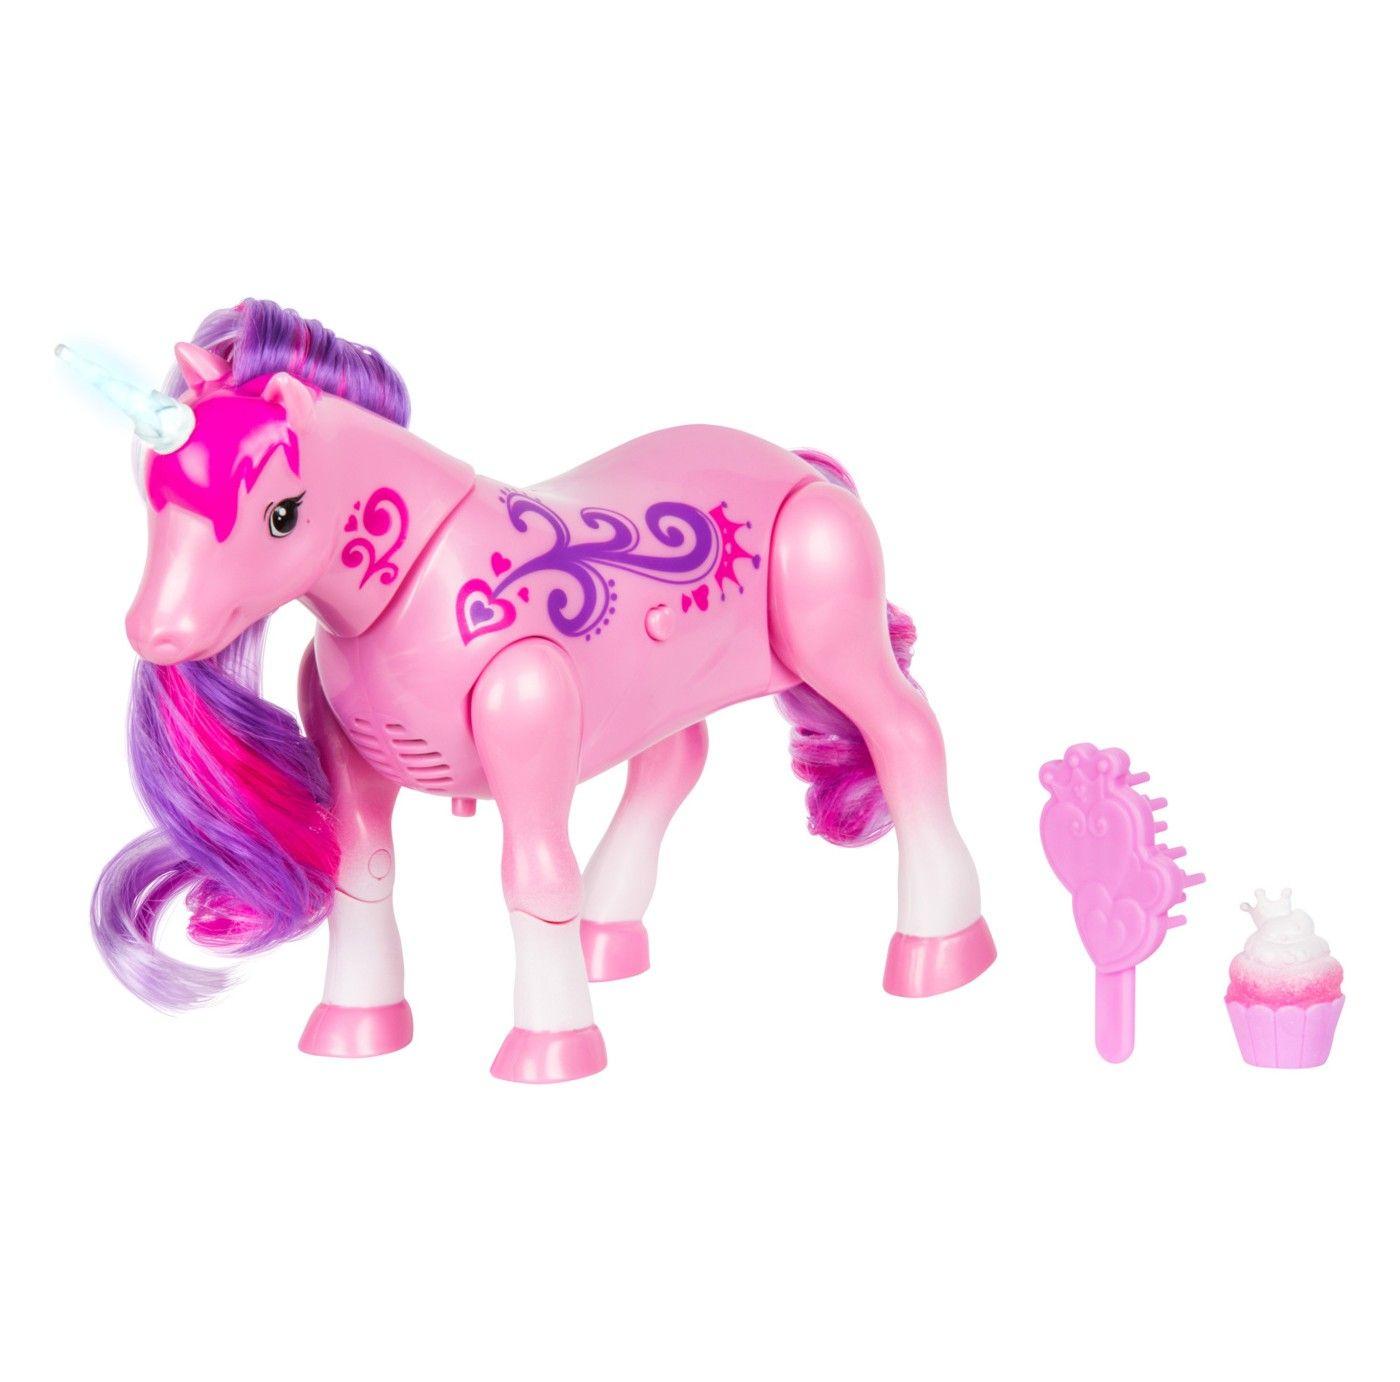 Affiliate Aff With Images Little Live Pets Lps Littlest Pet Shop Unicorn Toys